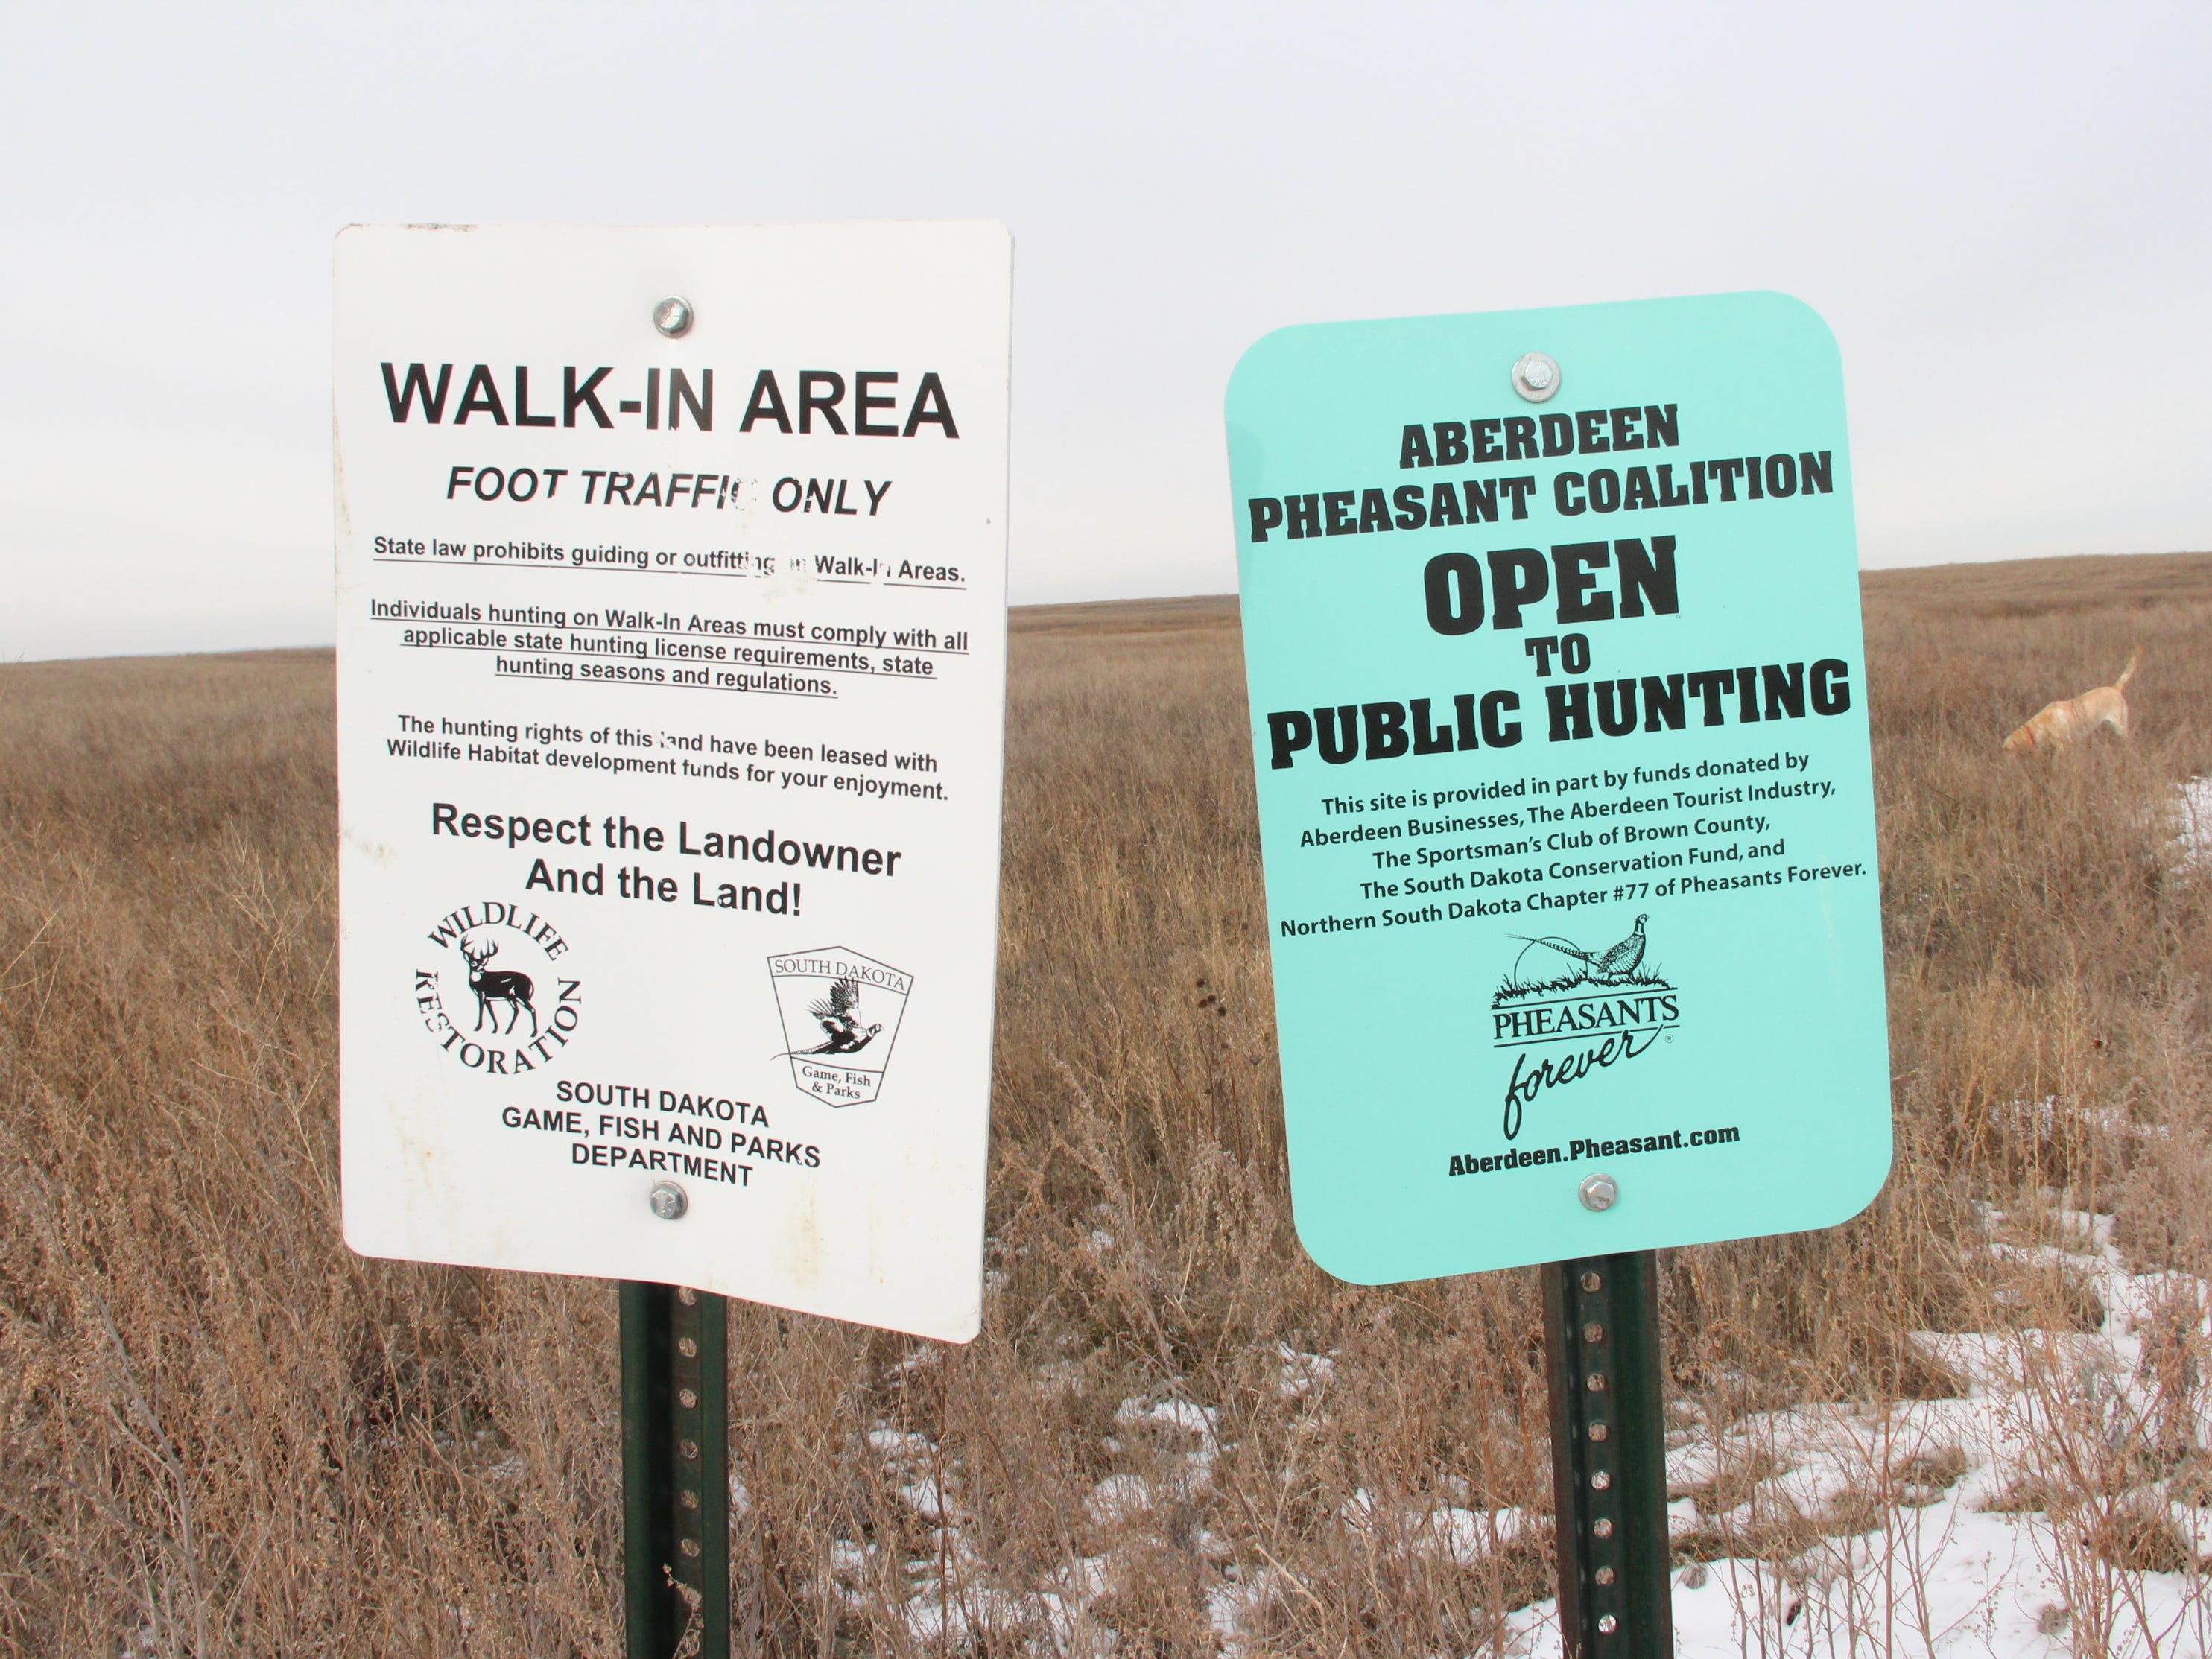 South Dakota offers a range of programs that afford hunters access to private lands as well as more than 5 million acres of public land for hunting.